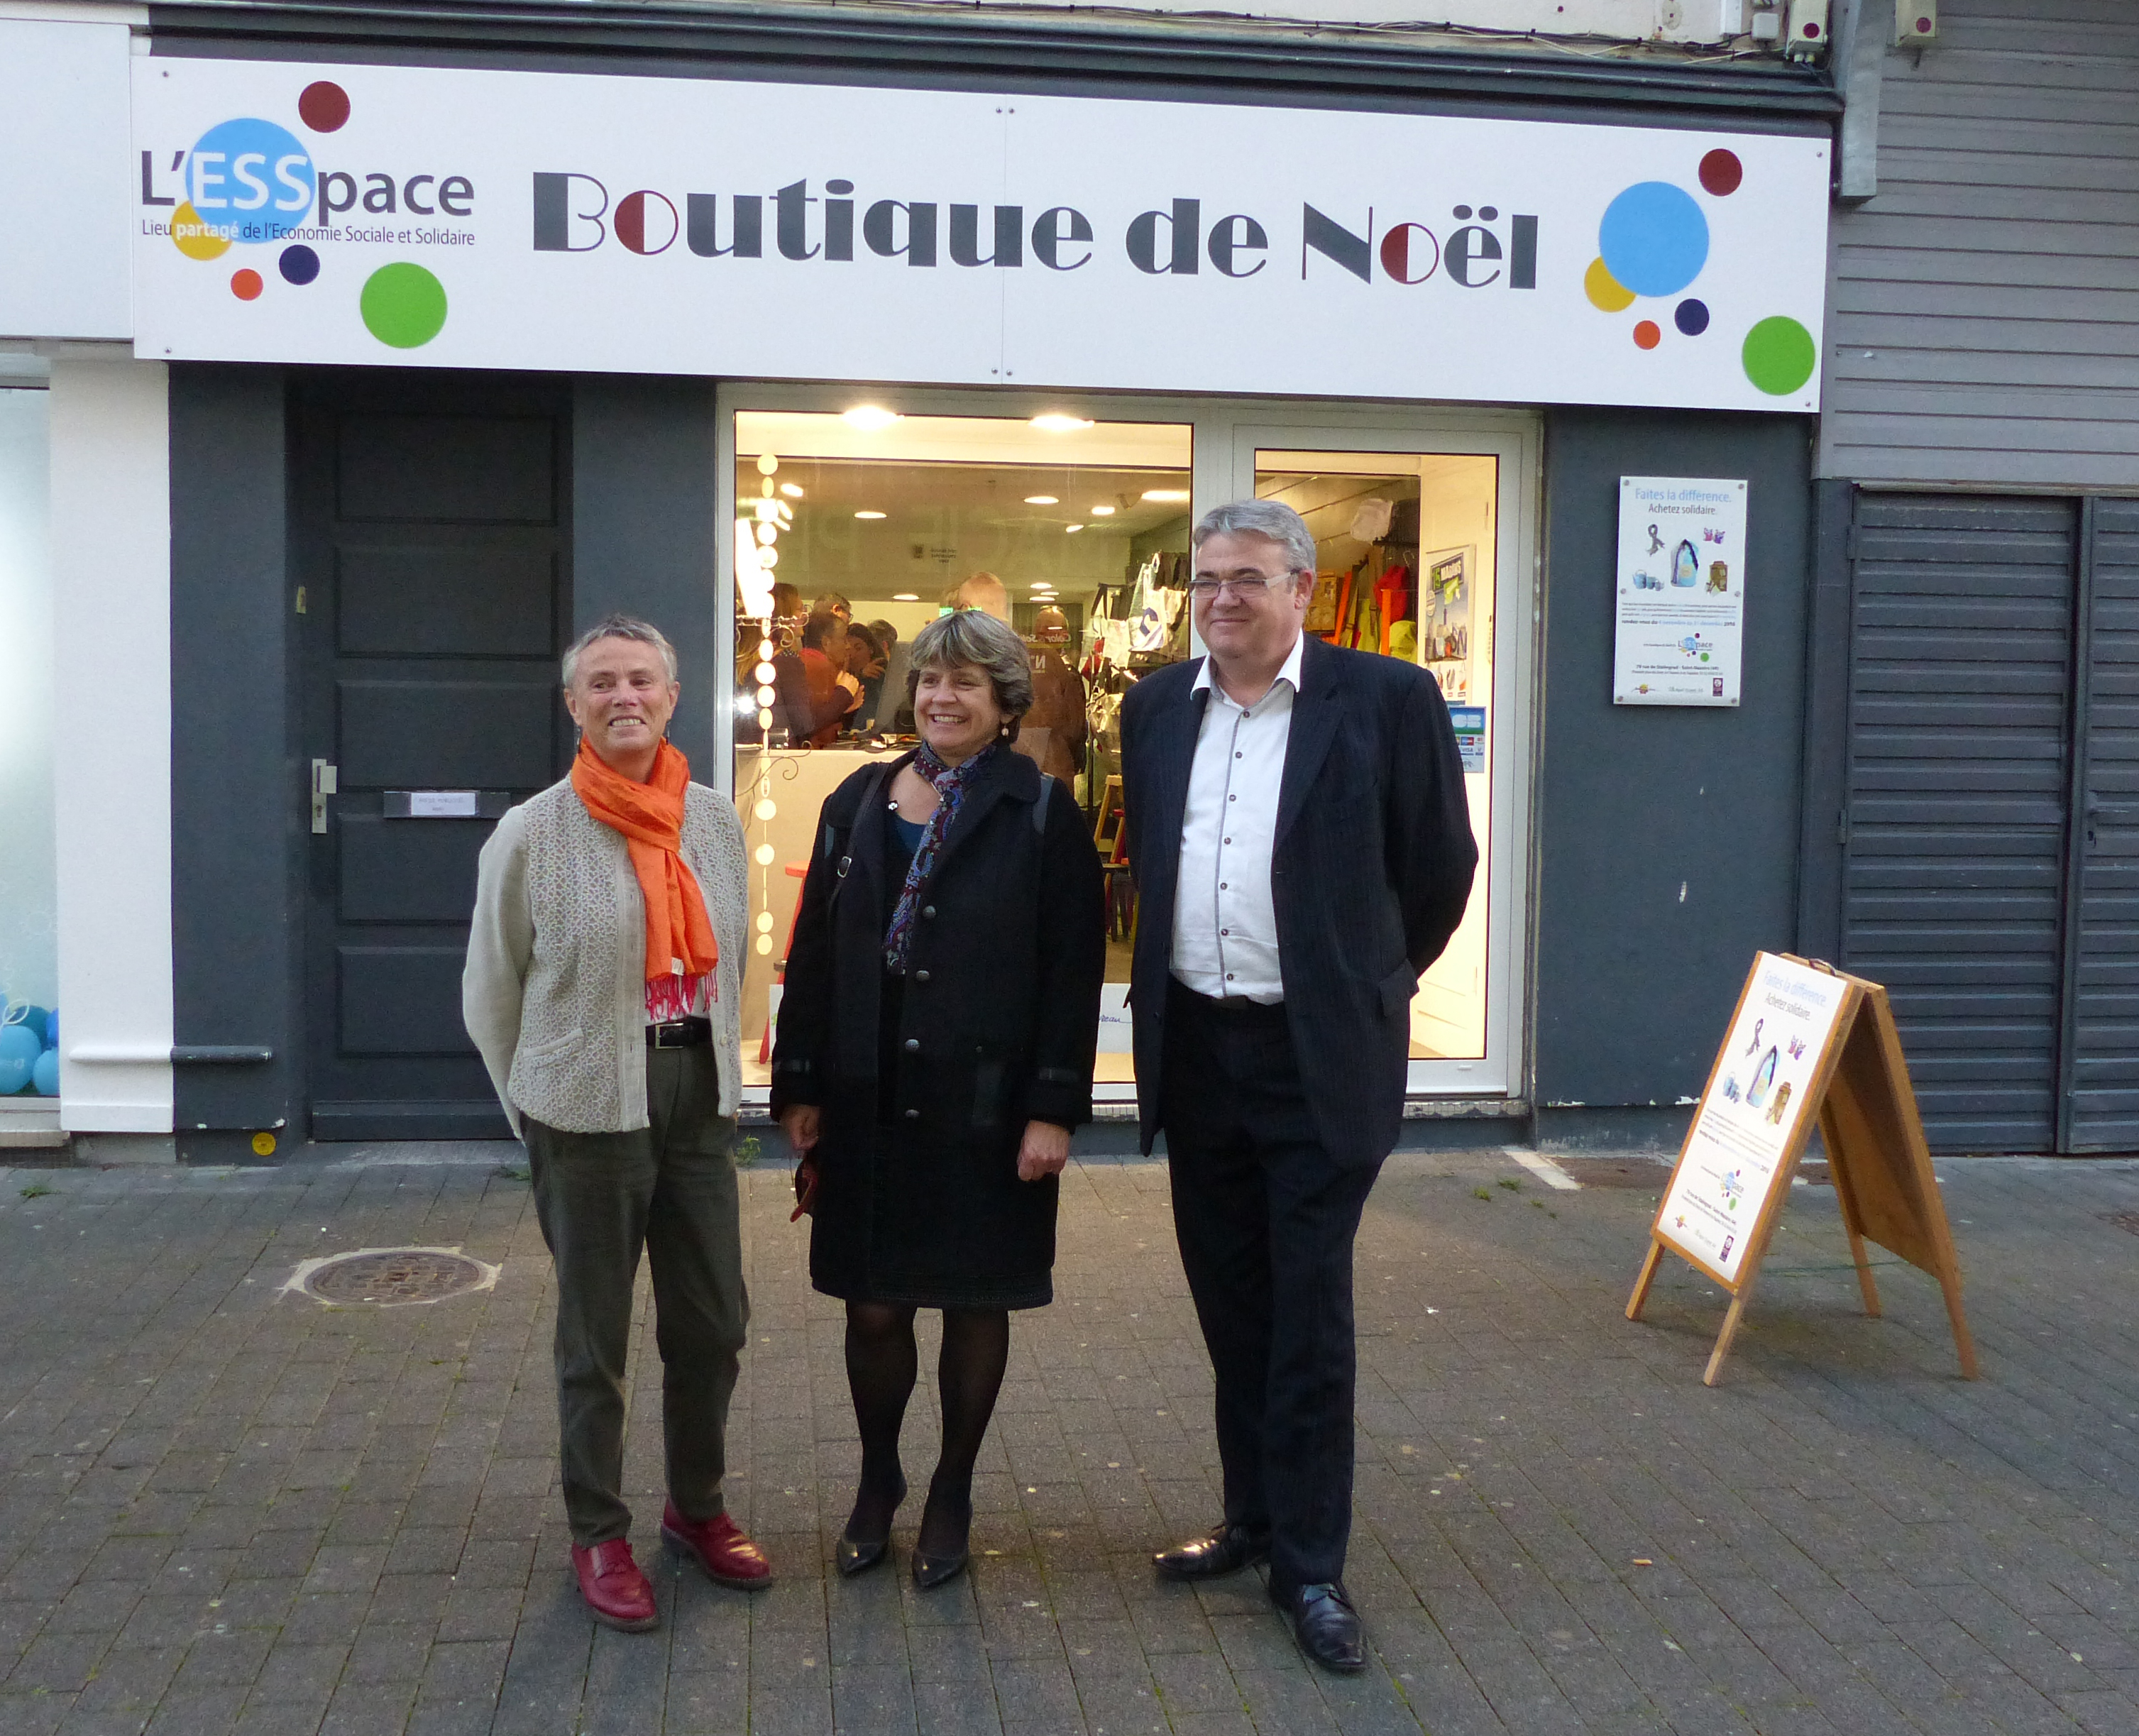 inauguration-esspace-pdts-assos